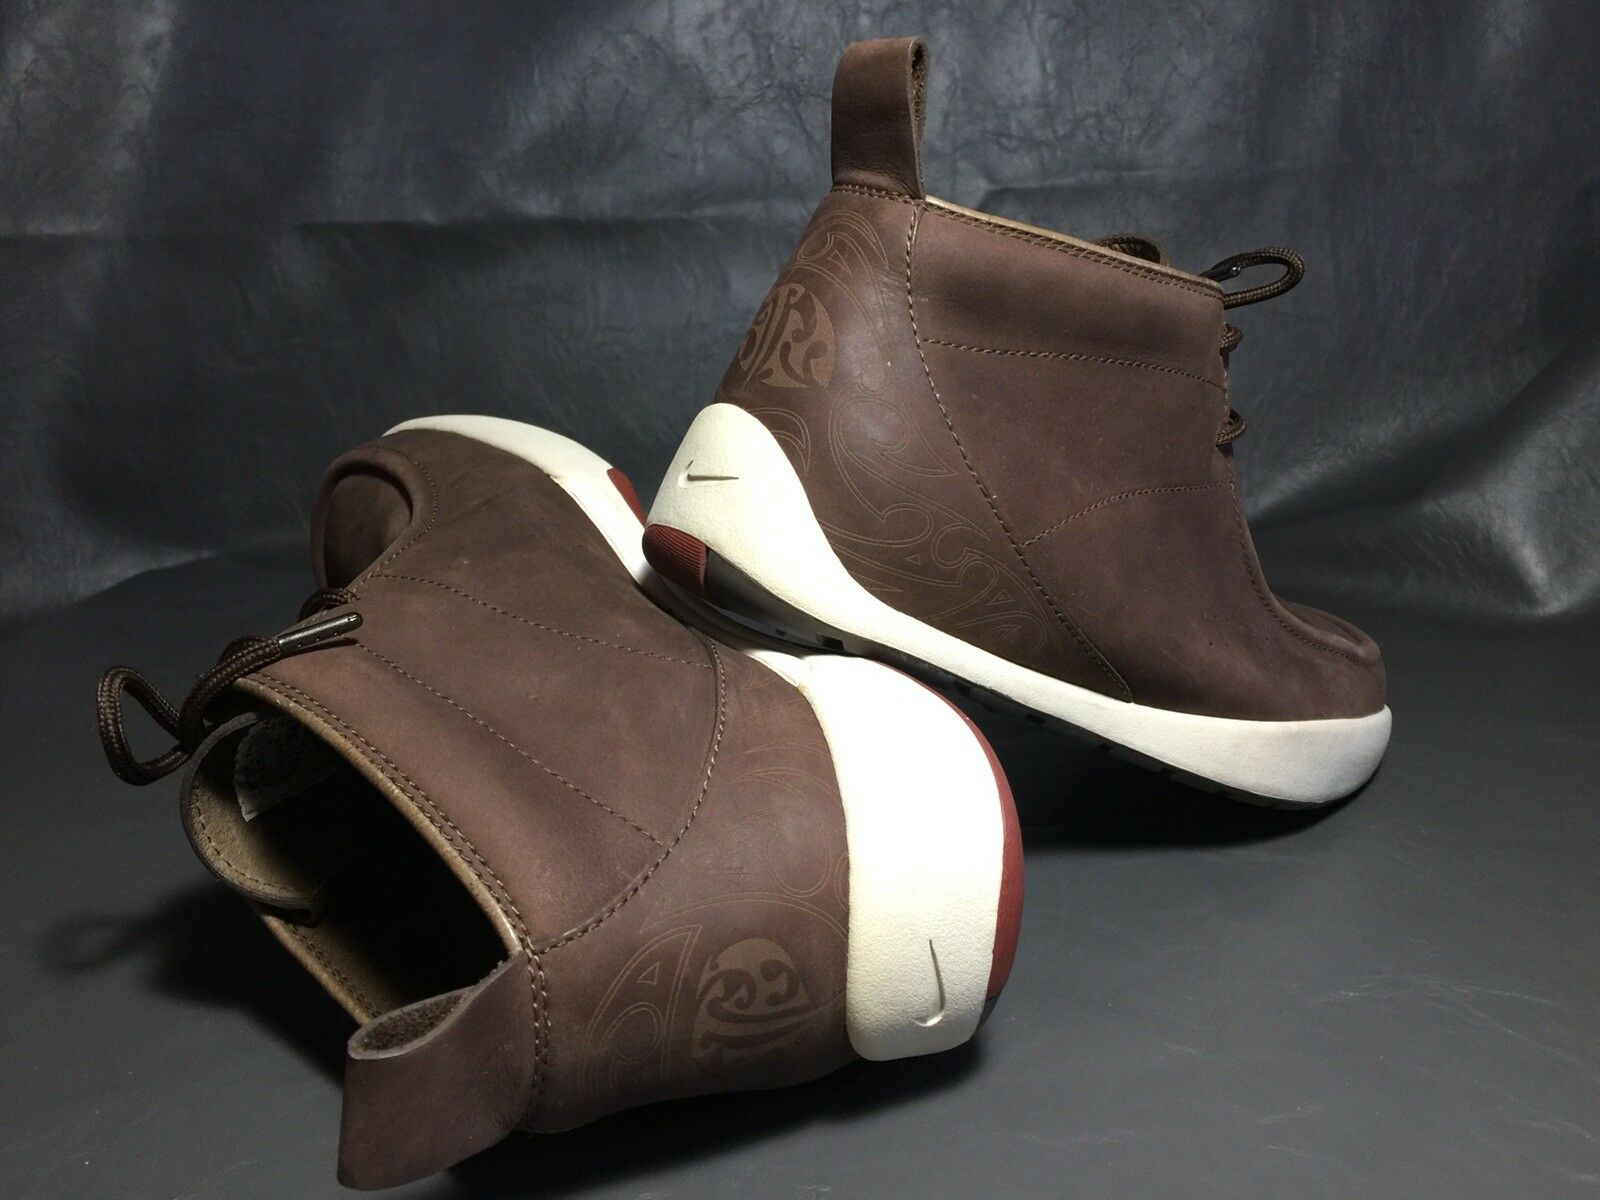 Nike HTM Limited Edition Lasered leather 2003